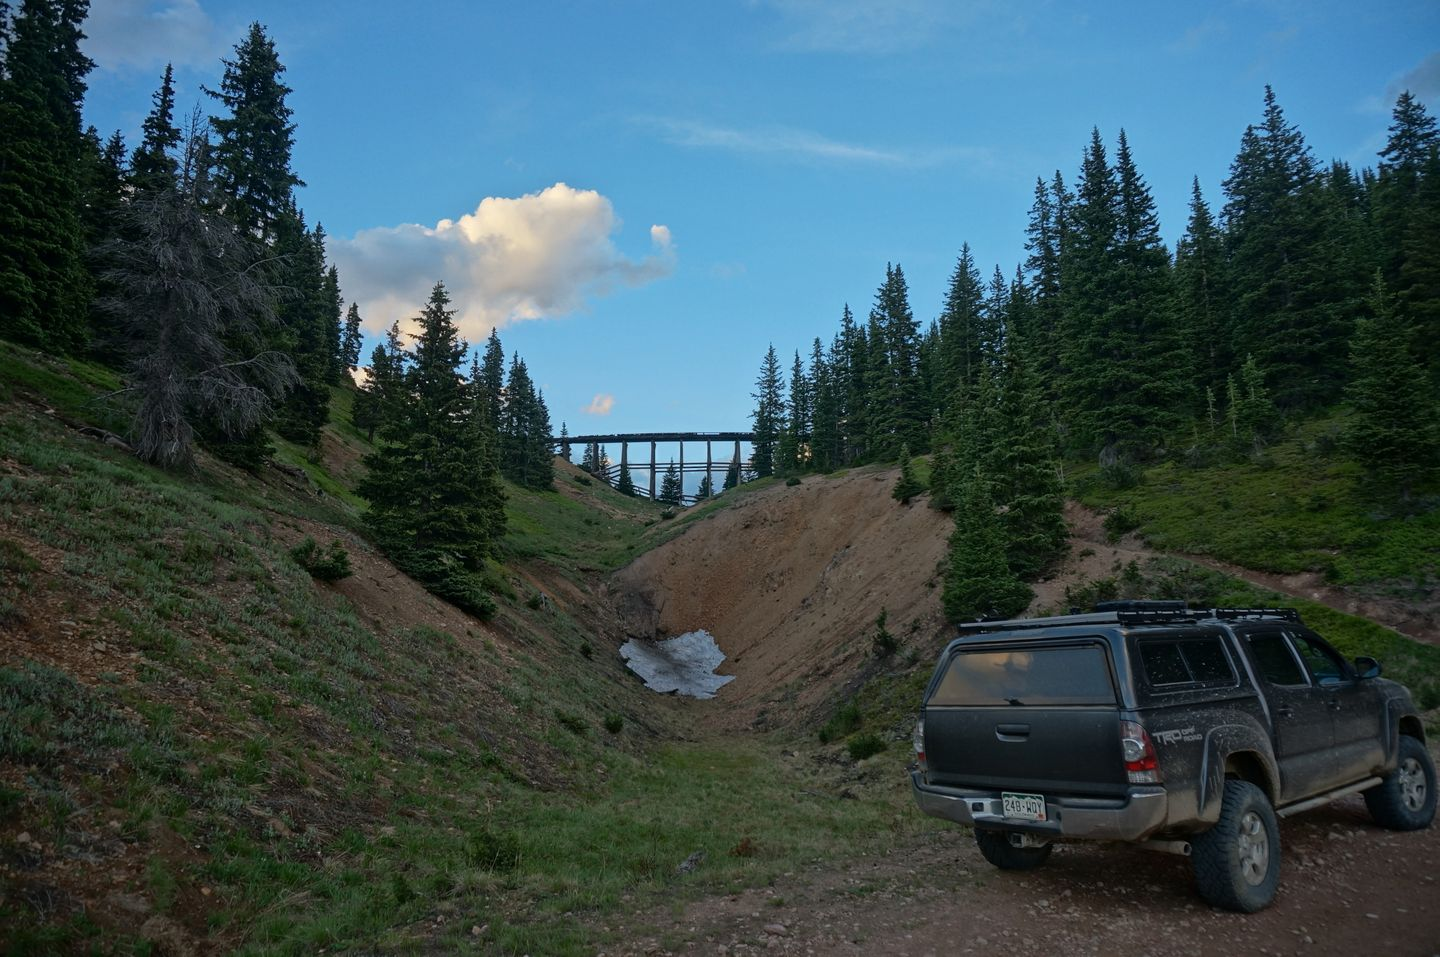 Rollins Pass West - Waypoint 5: Hiking Trail to Riflesight Notch Trestle